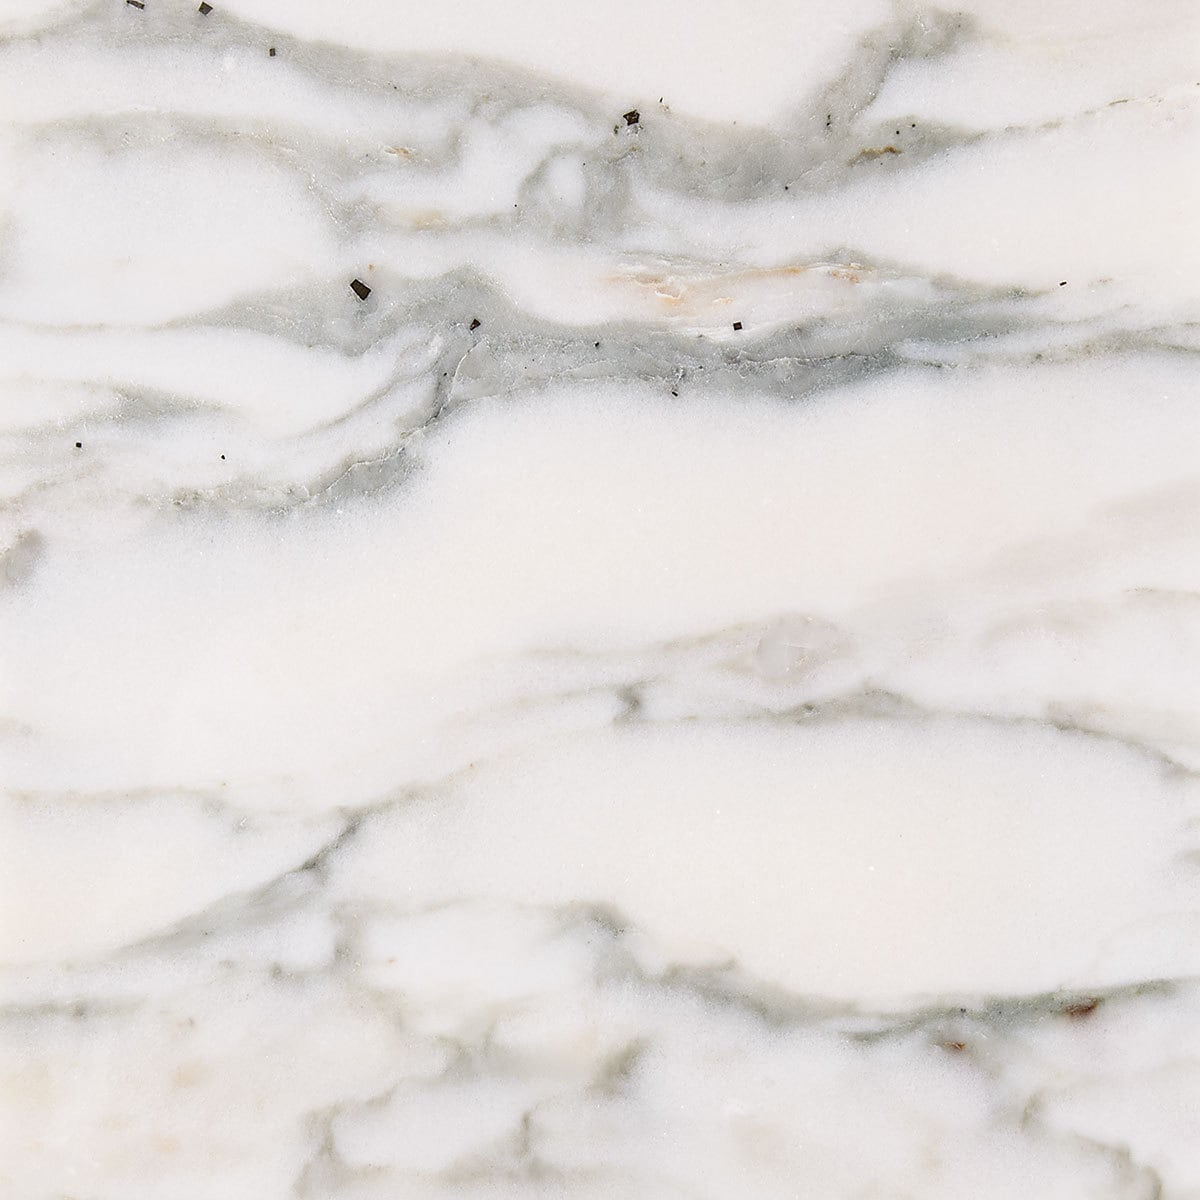 Marbletiledirect Calacatta Verde White Marble 3-inch x 6-inch x 3/8-inch Polished Tiles